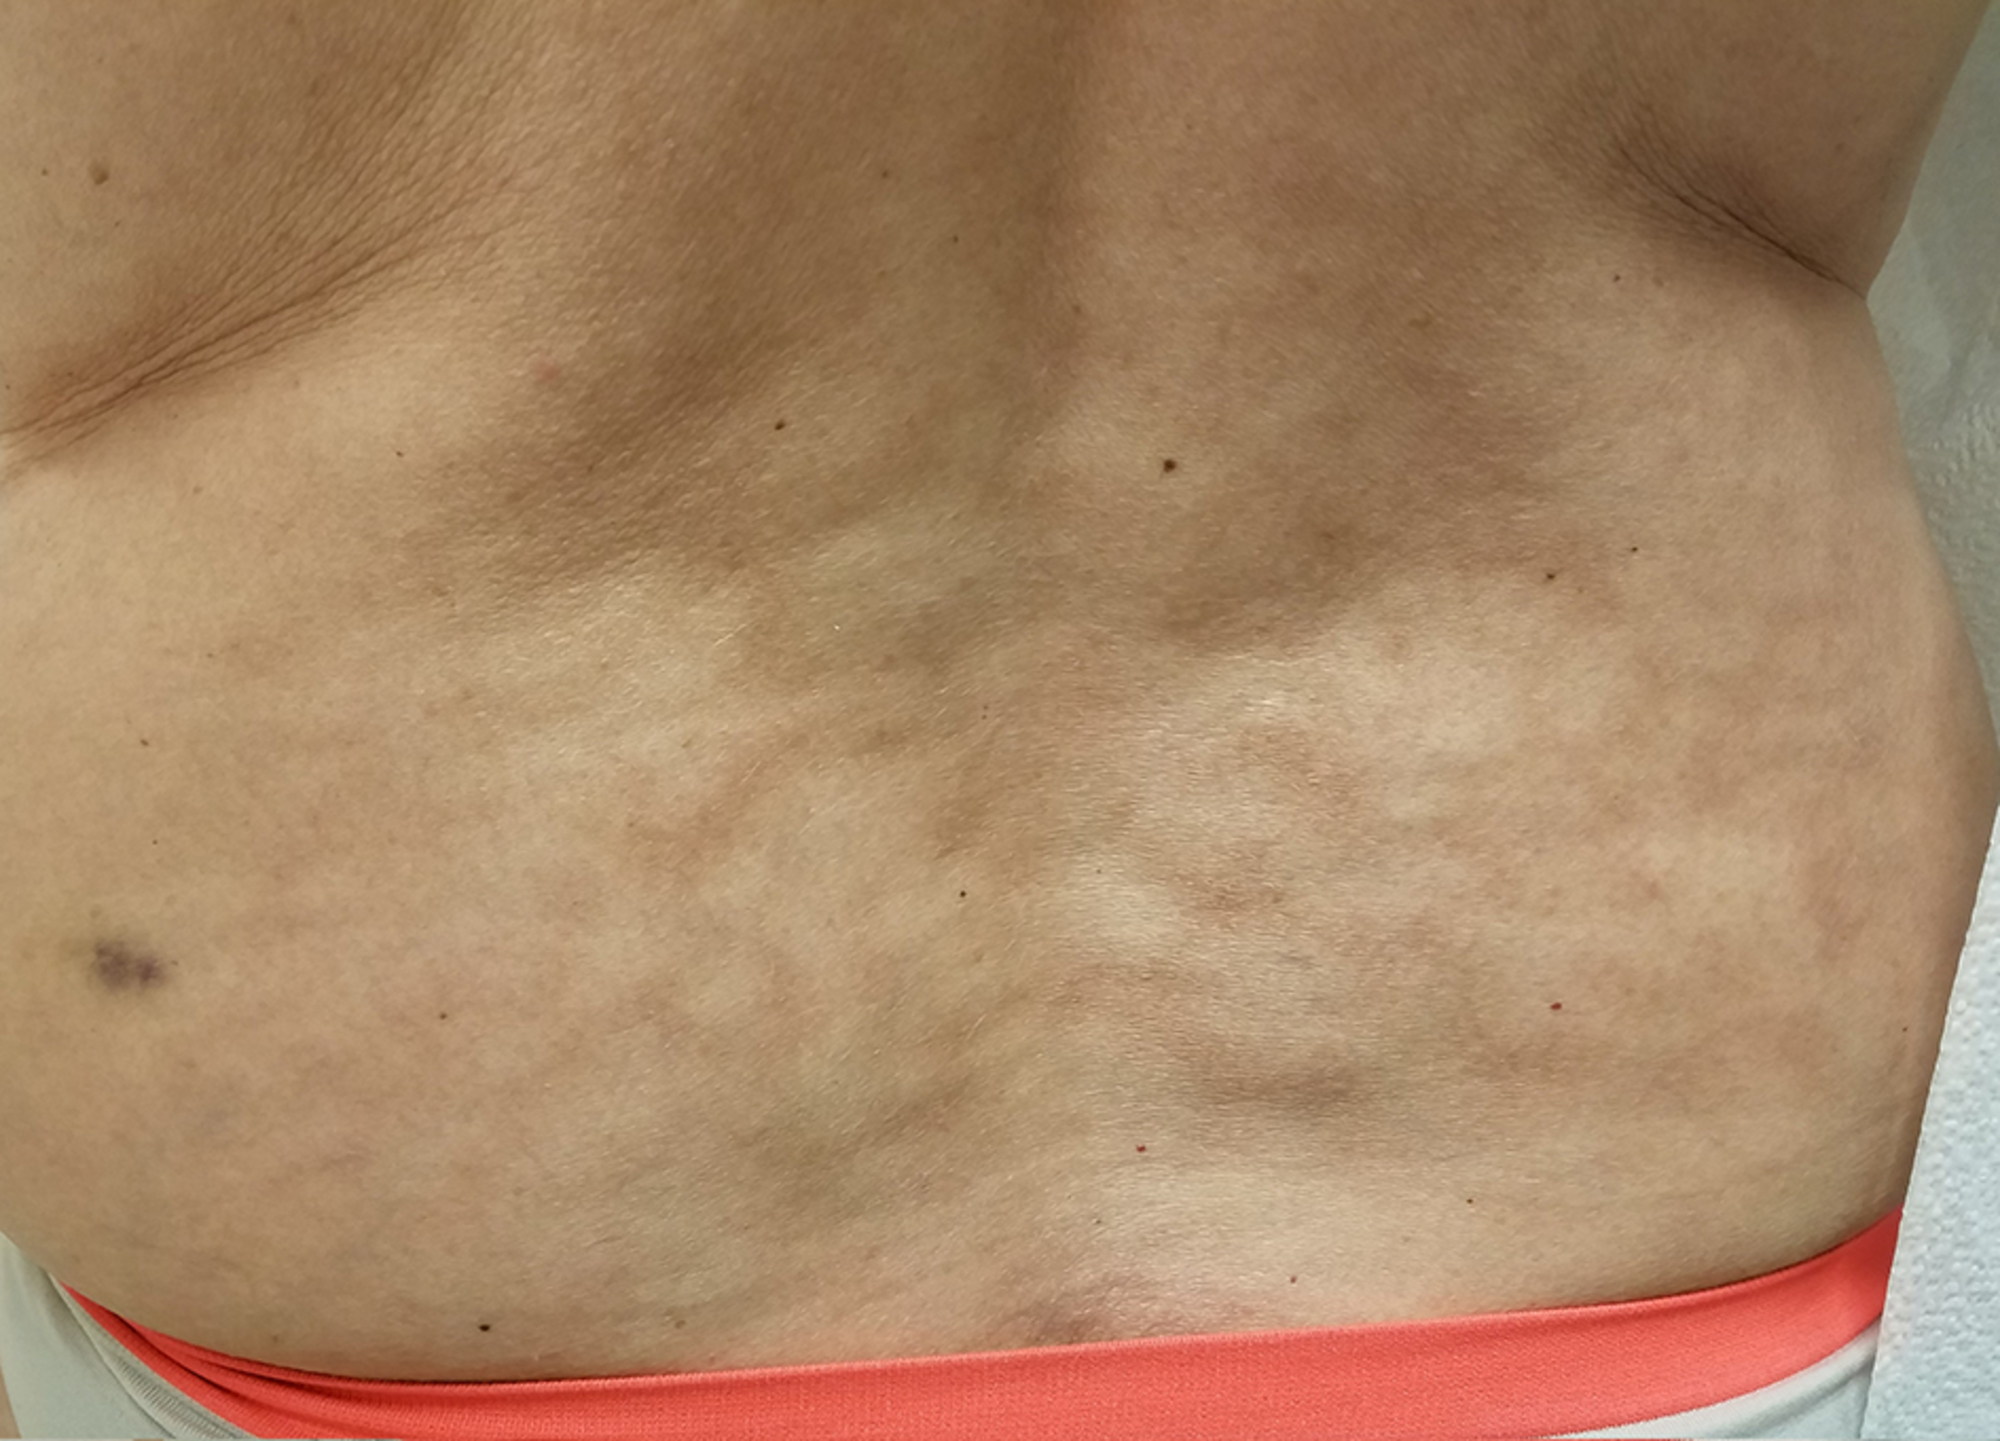 Cureus | Erythema Ab Igne from Heating Pad Use: A Report of